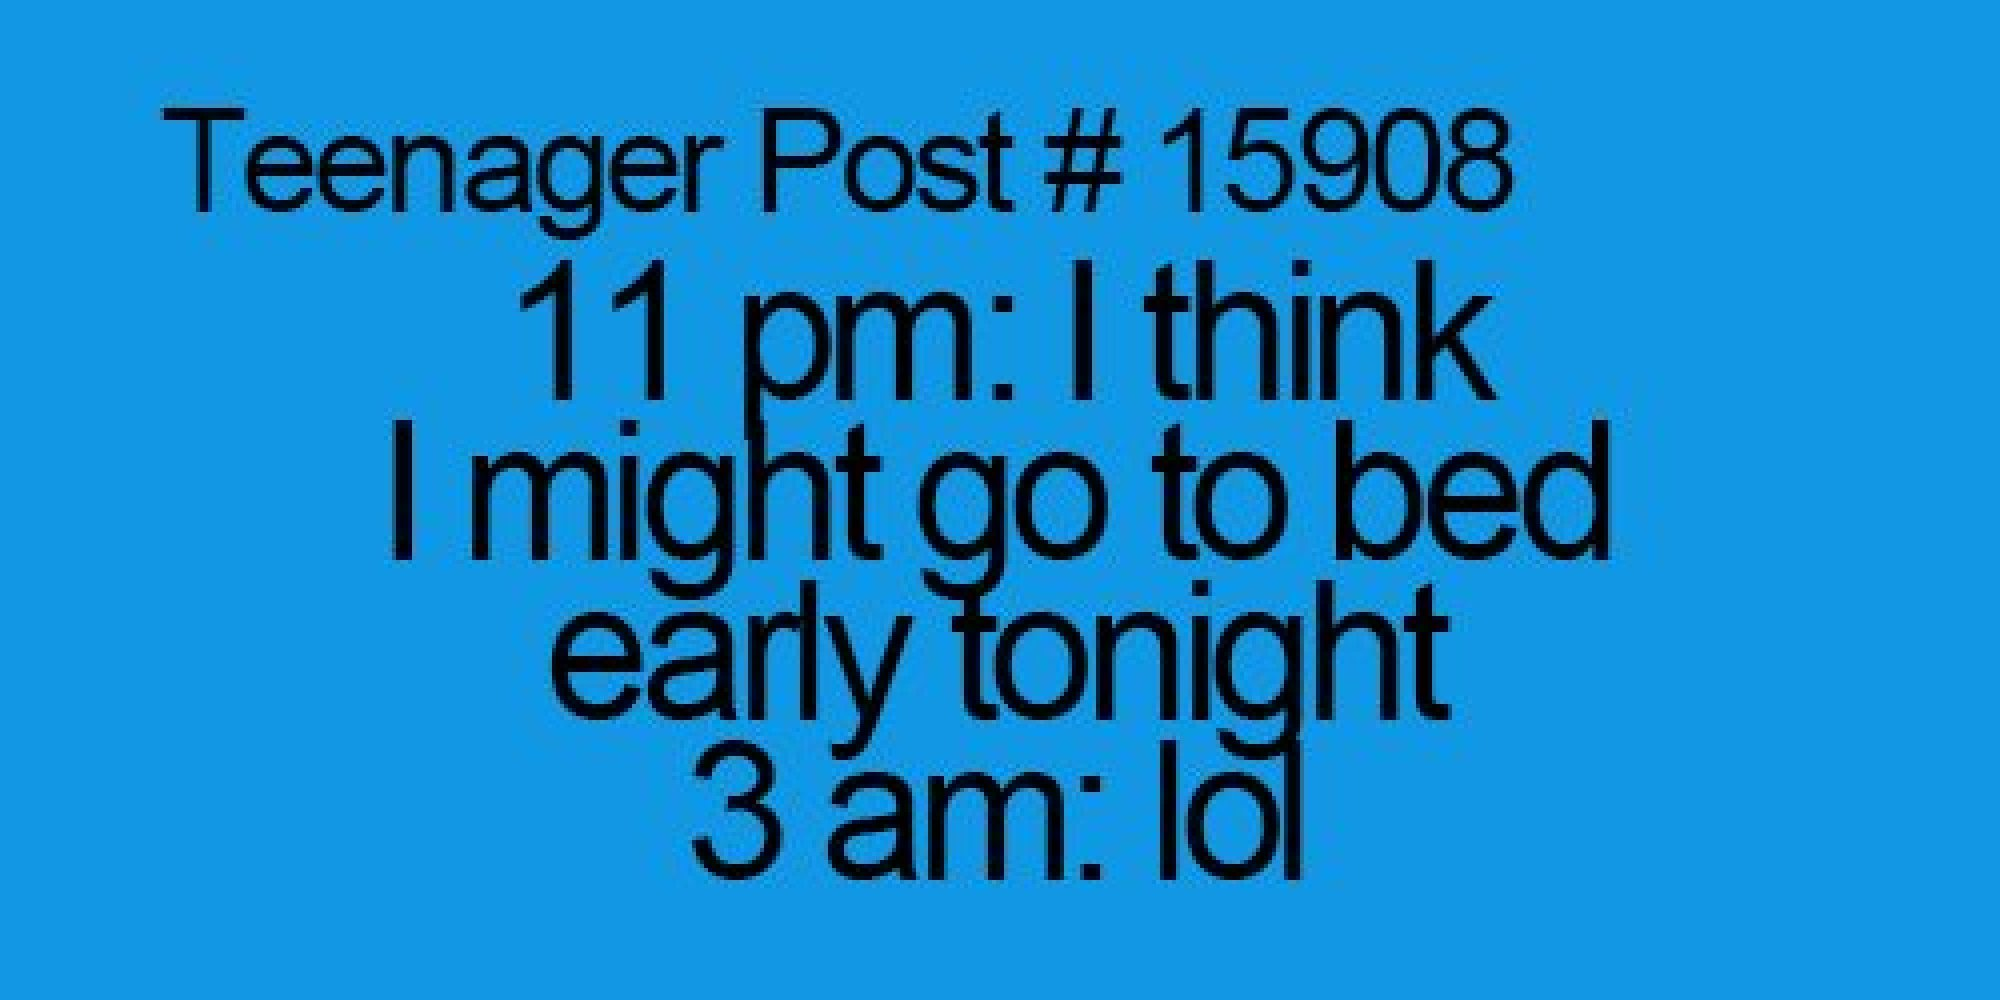 The Purpose Of Teenage Brain >> Teenager Posts Of The Week: iOS7 Problems And Going To Sleep 'Early' | HuffPost